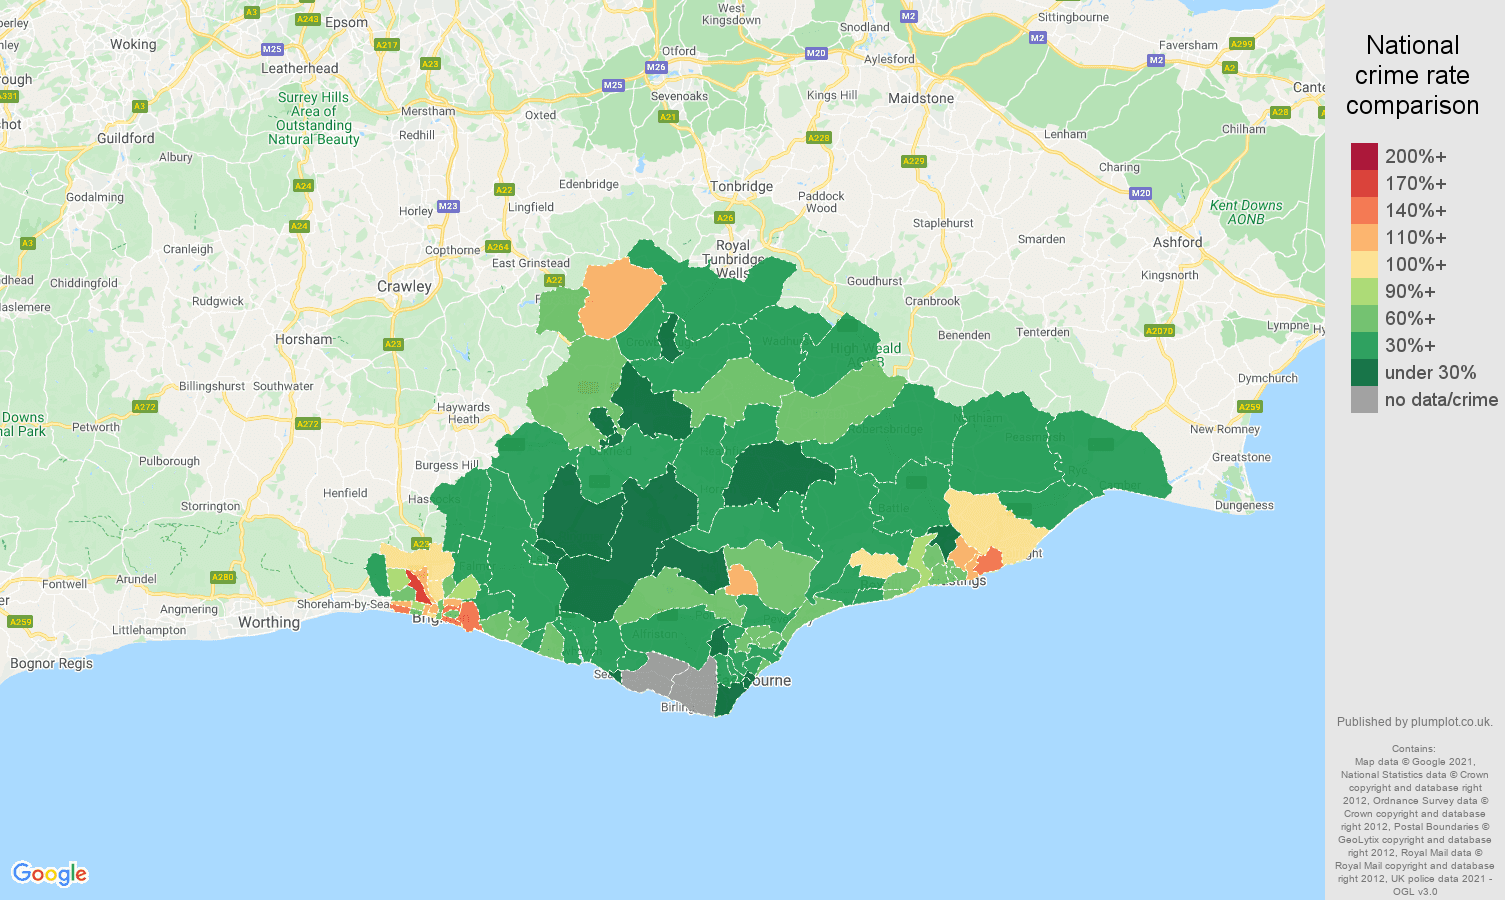 East Sussex vehicle crime rate comparison map